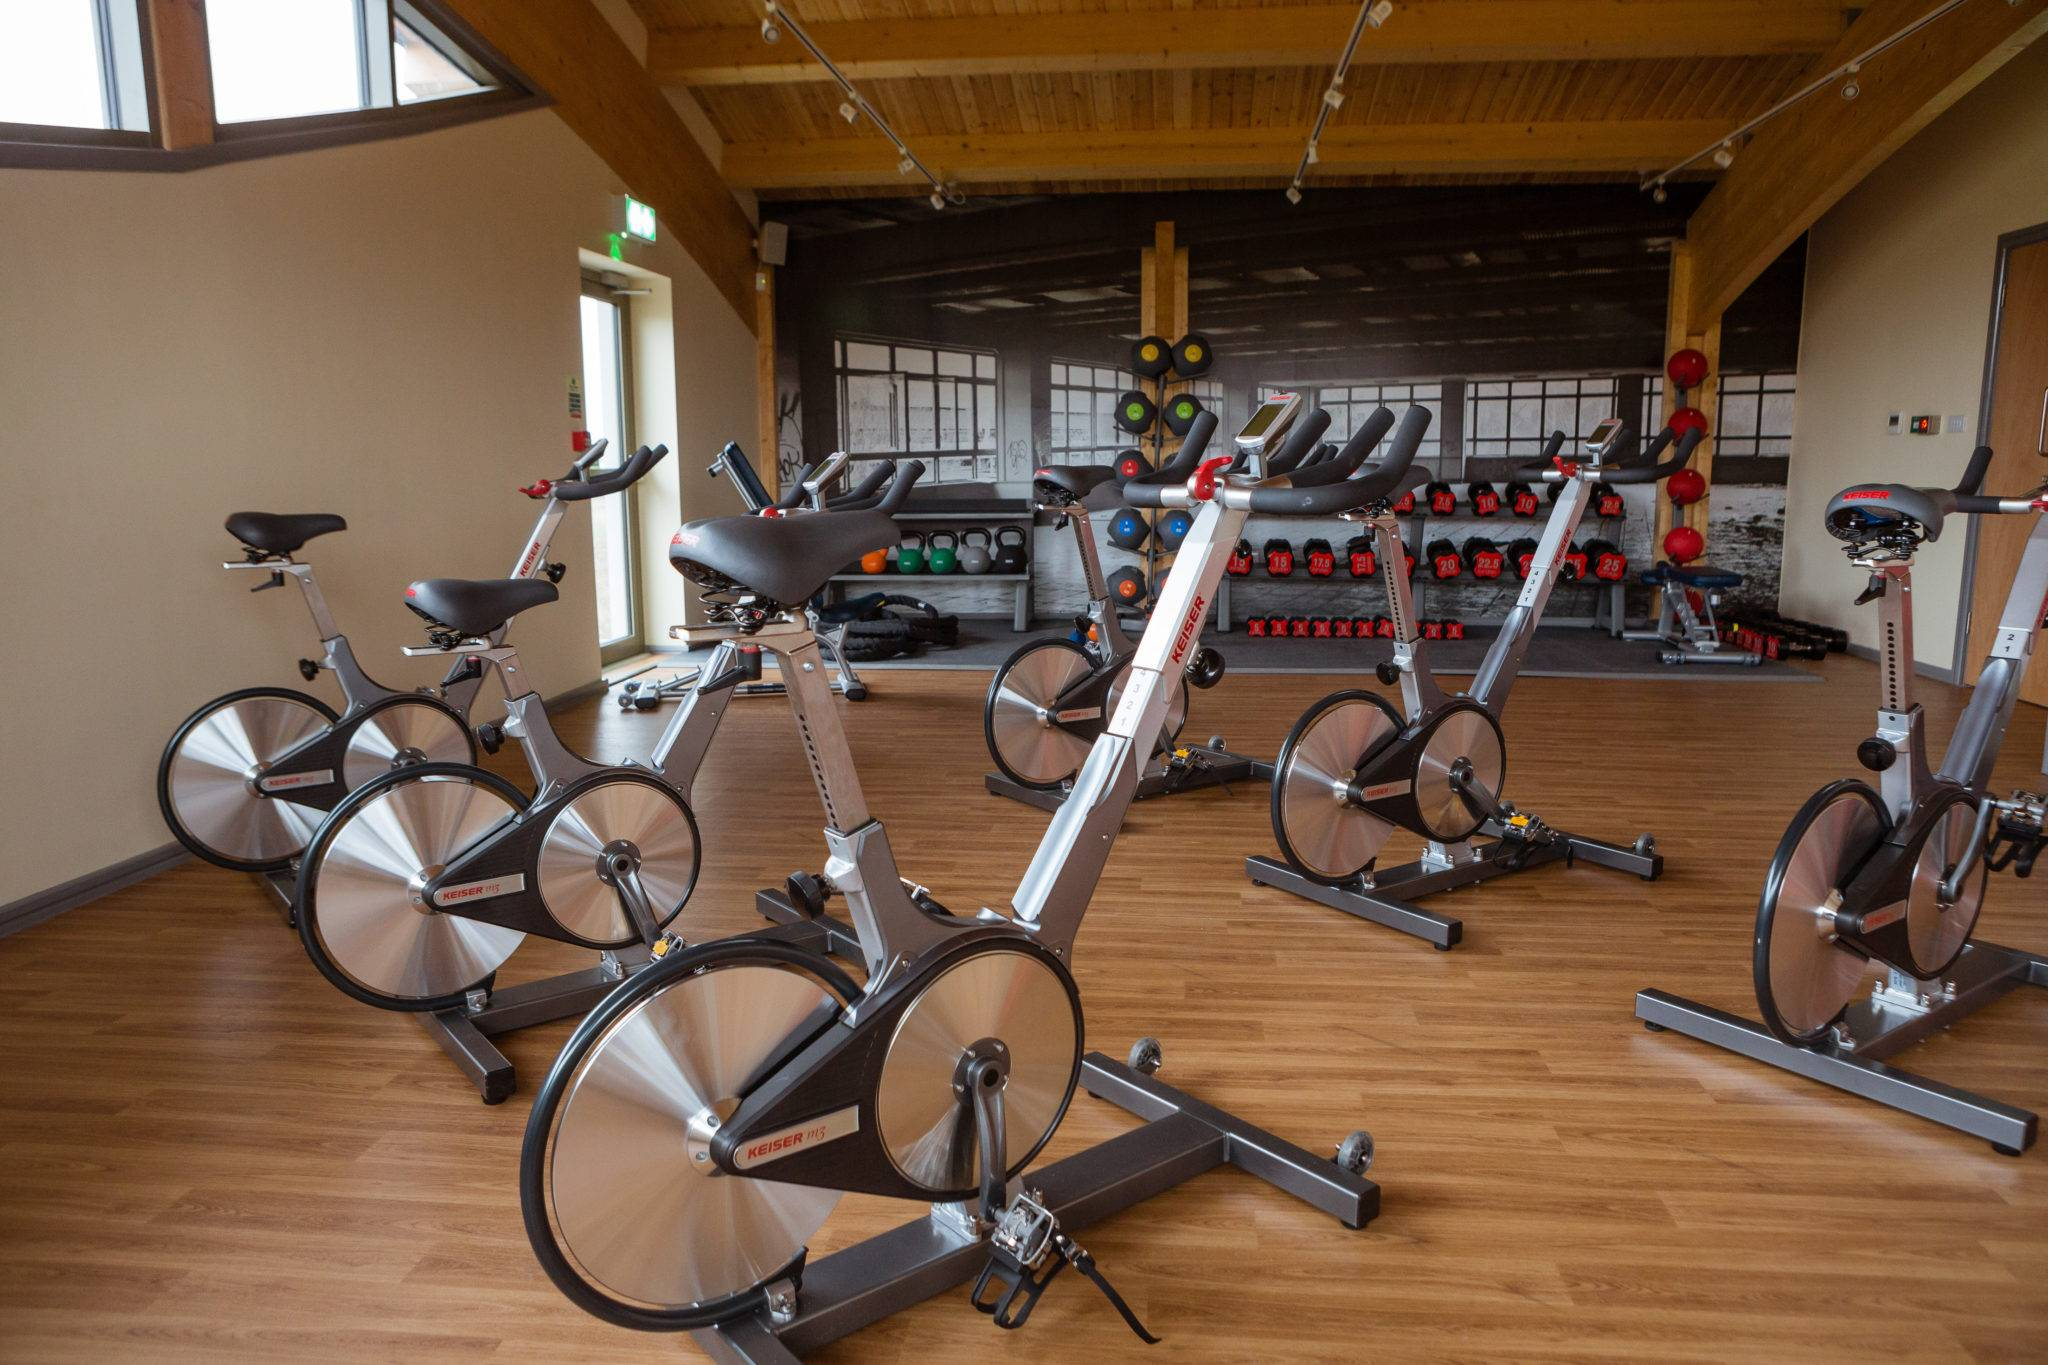 http://silverbay.co.uk/wp-content/uploads/2016/12/silver-bay-holiday-village-anglesey-spa-and-leisure-spinning-bikes-gym.jpg